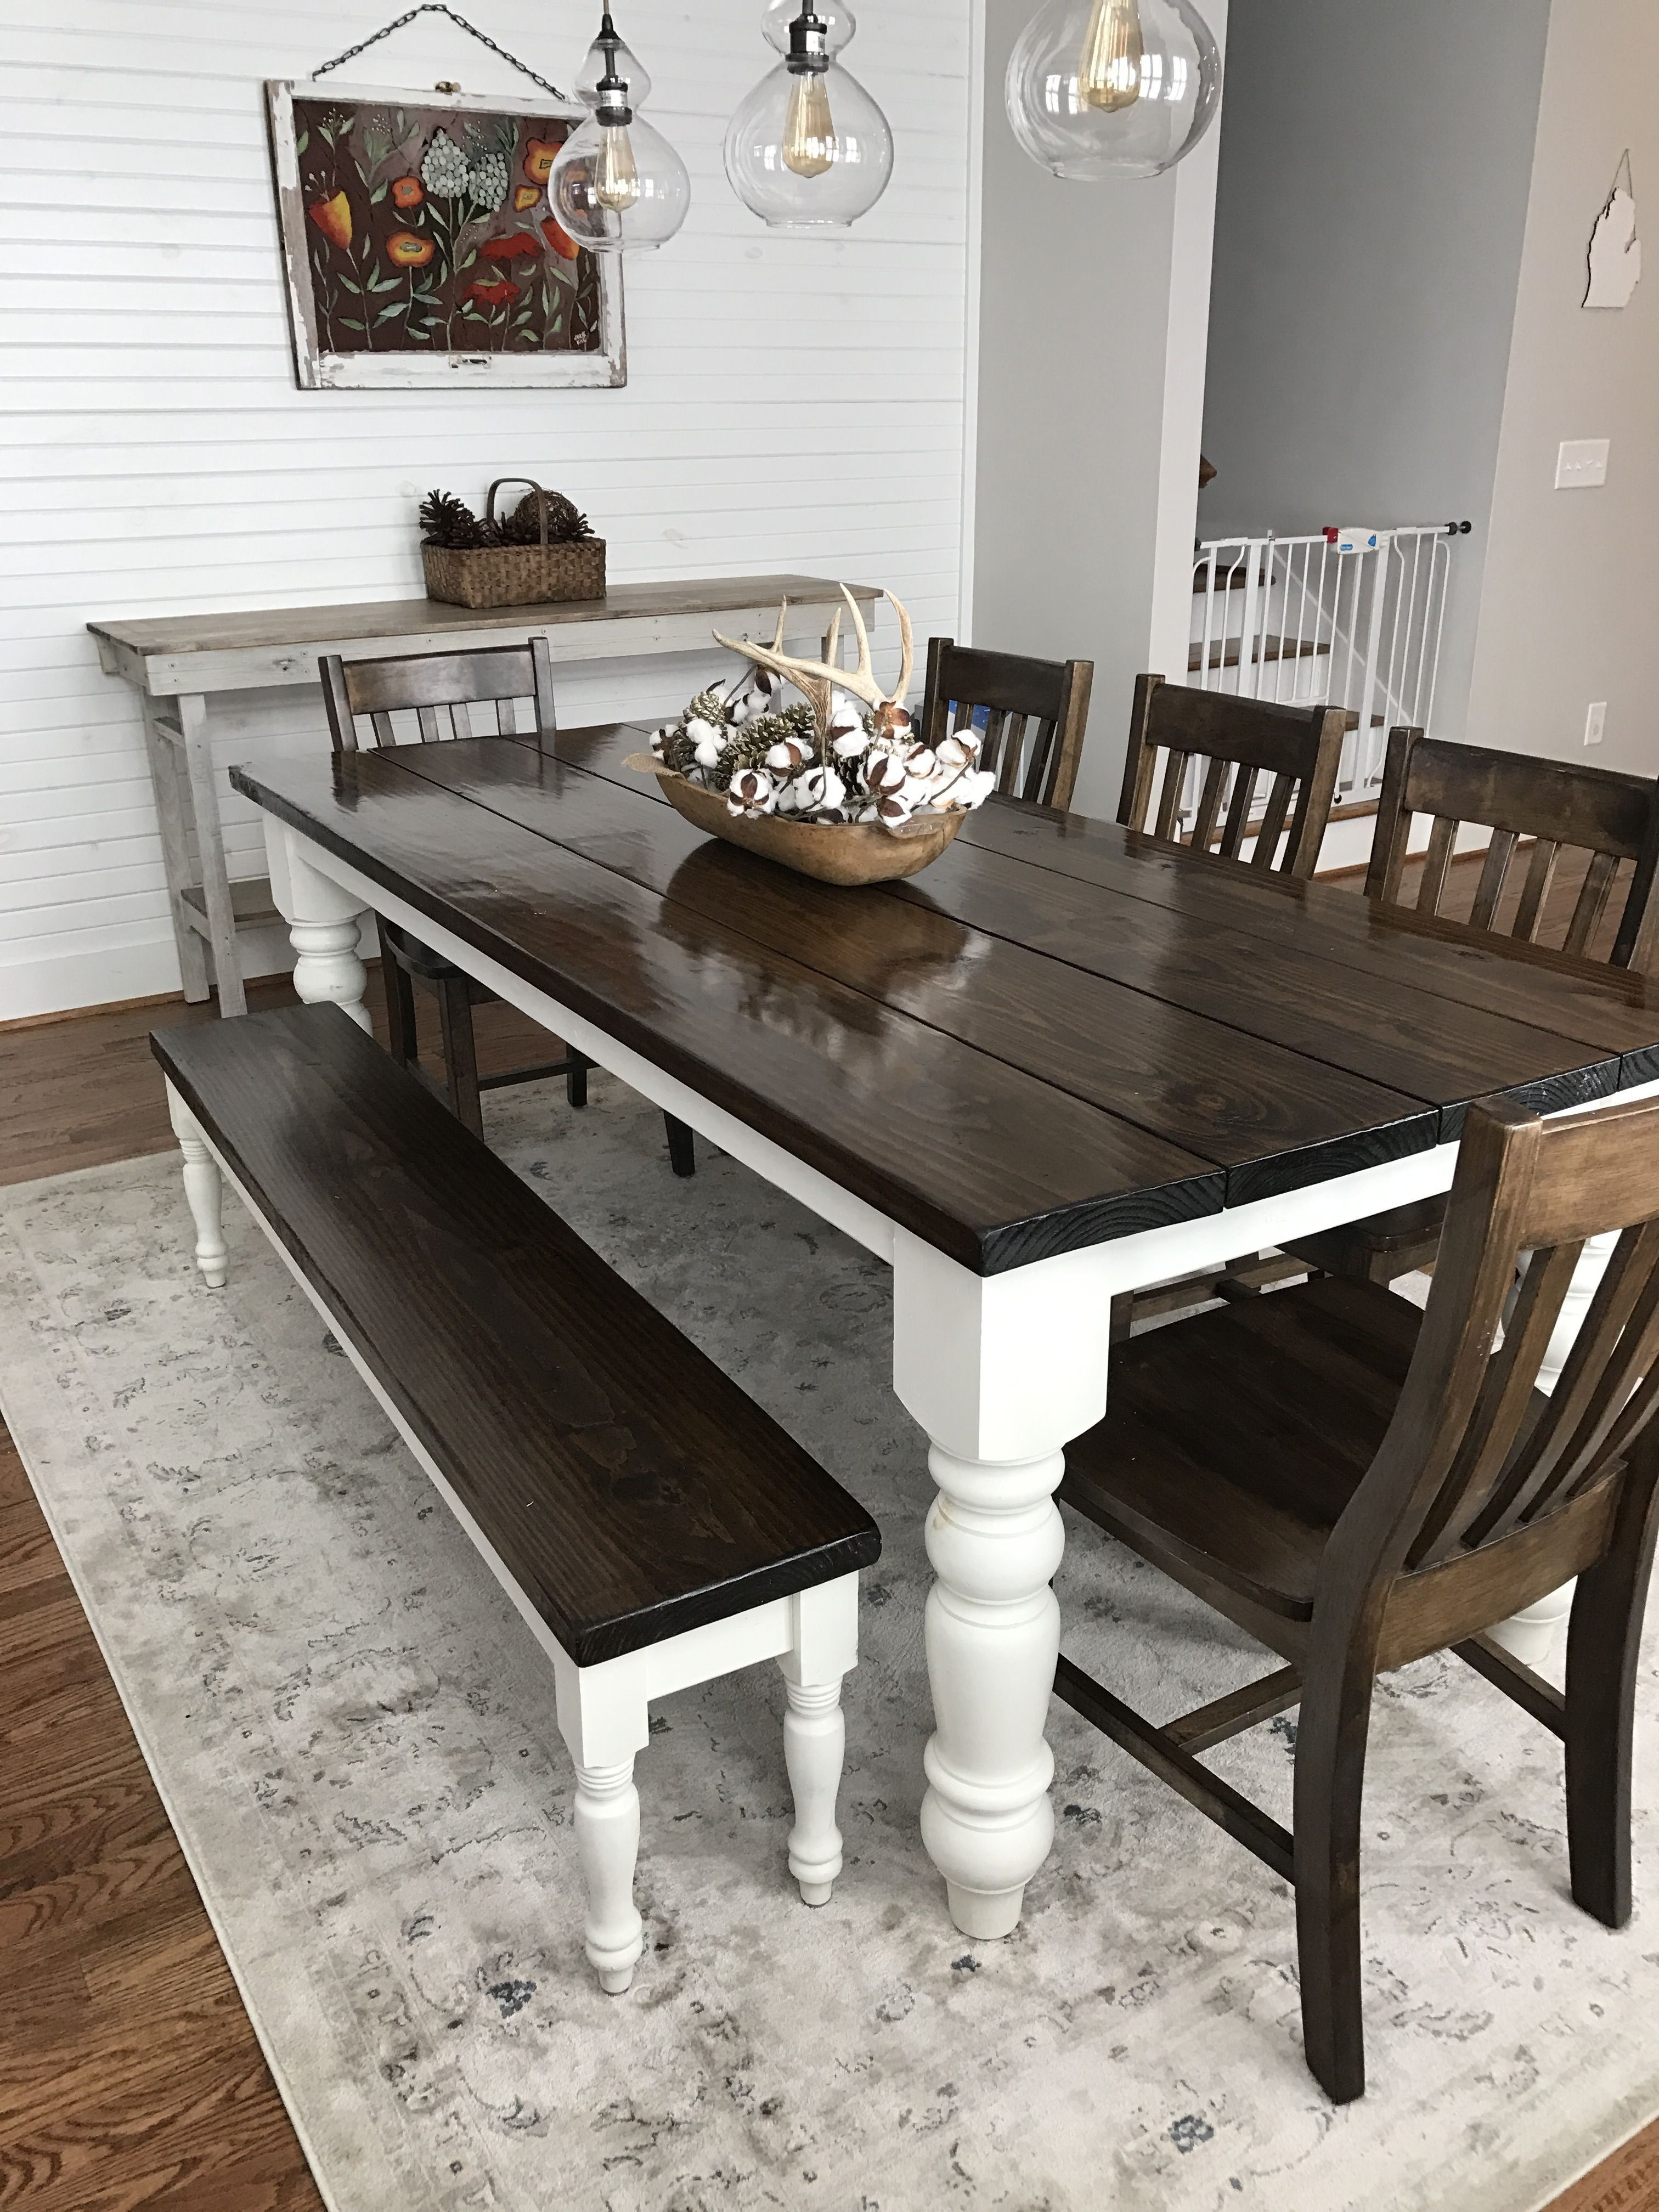 New Farmhouse Kitchen Table With Bench With Images Modern